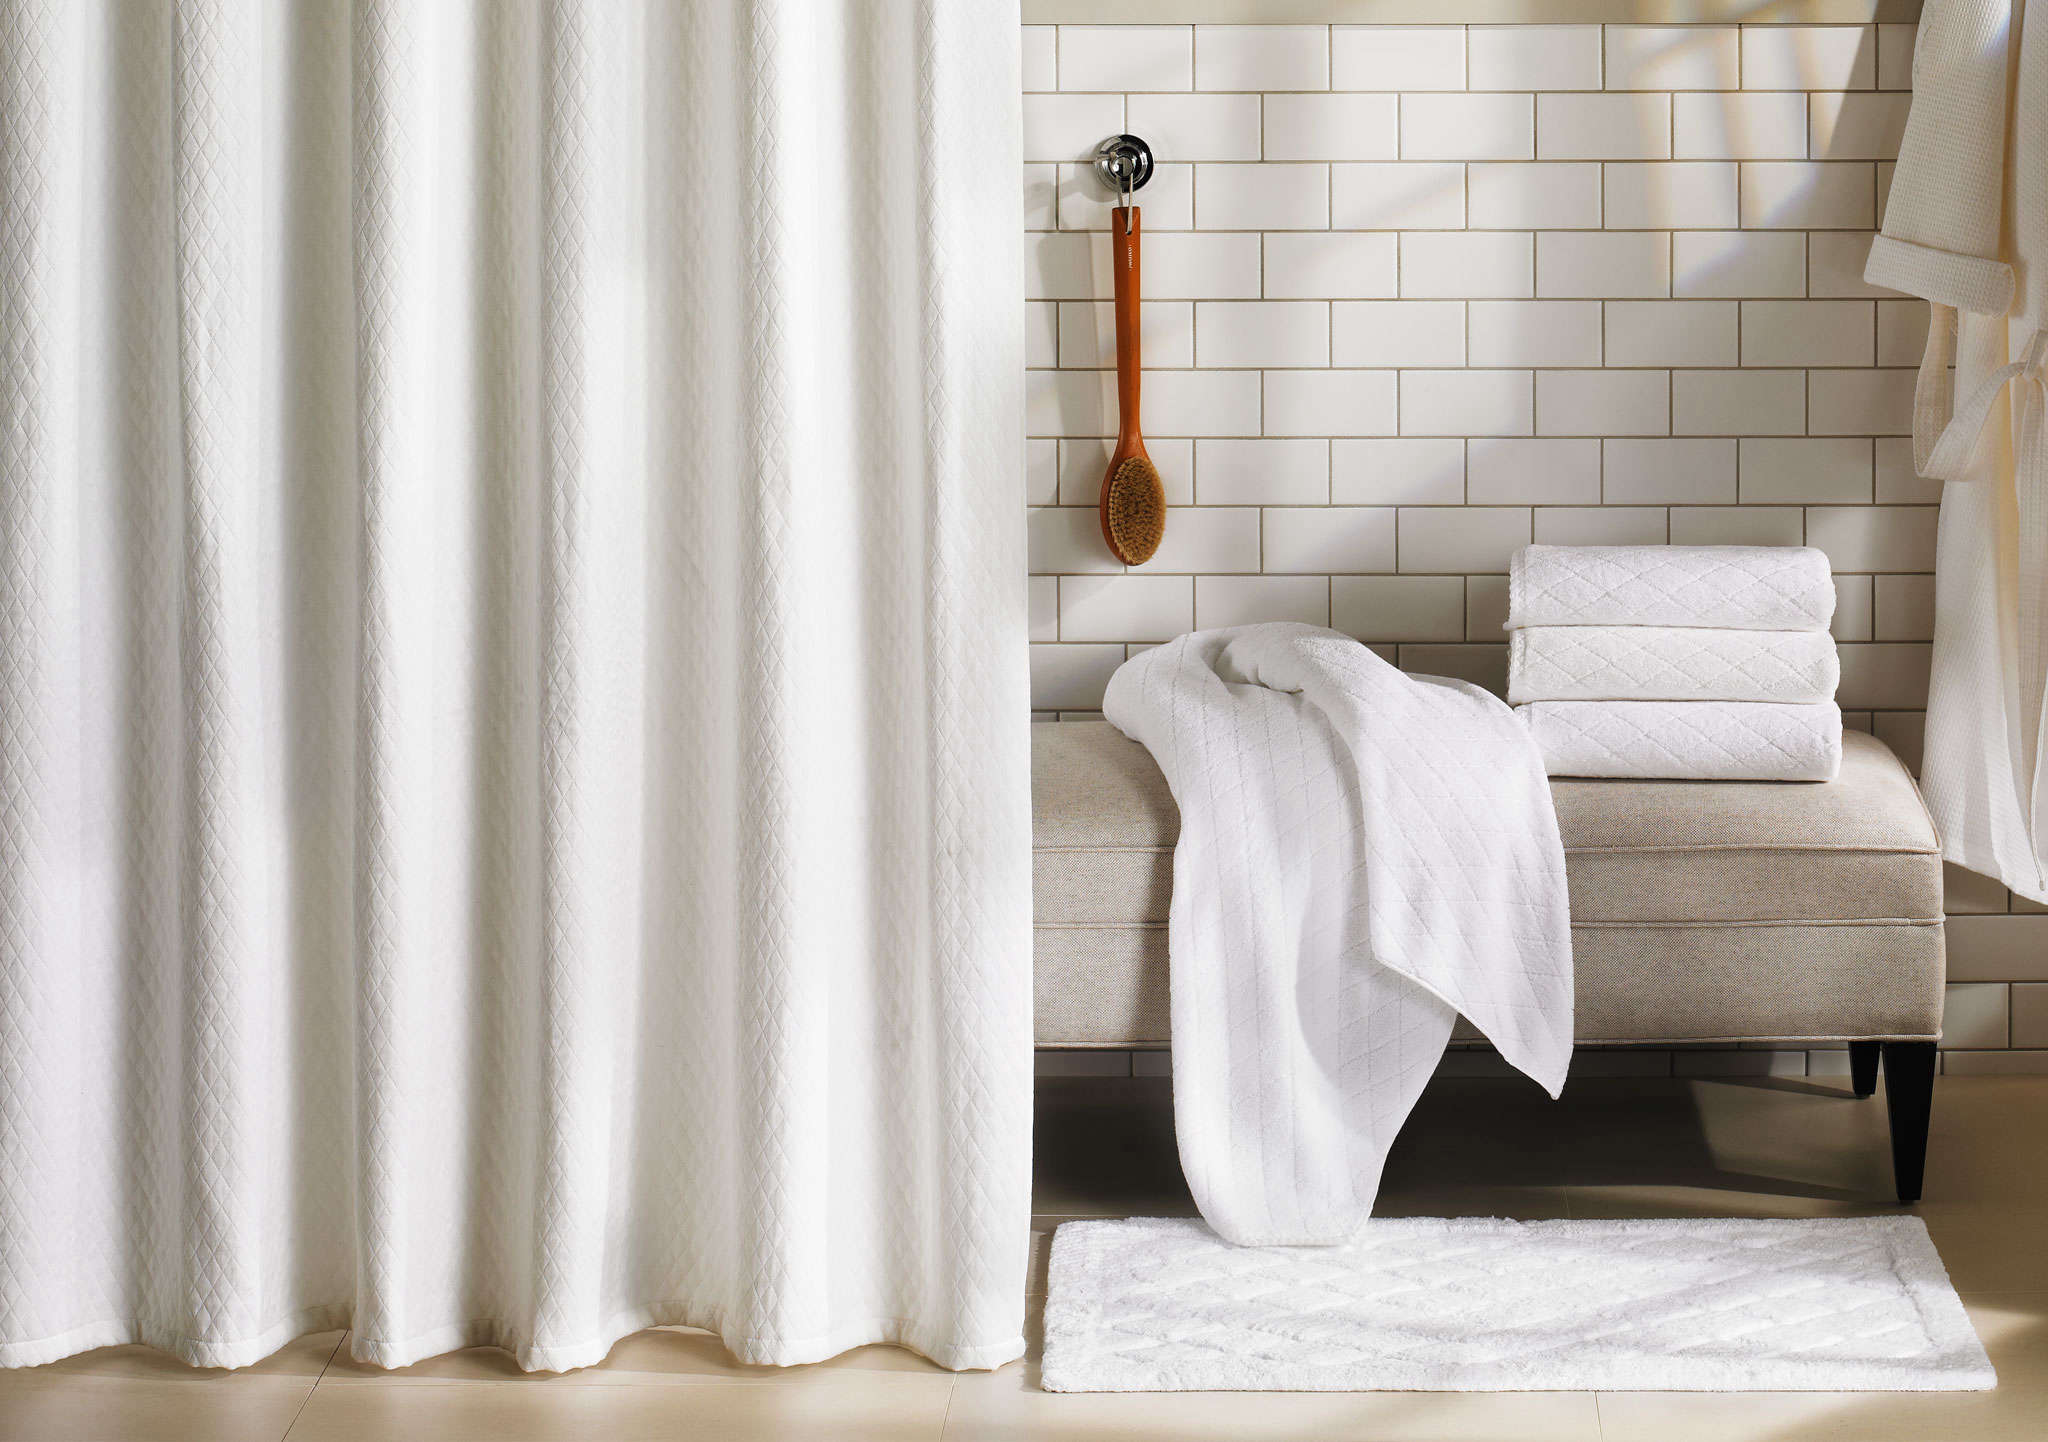 barbara barry classic collection for bedbath&beyond |remodelista 13